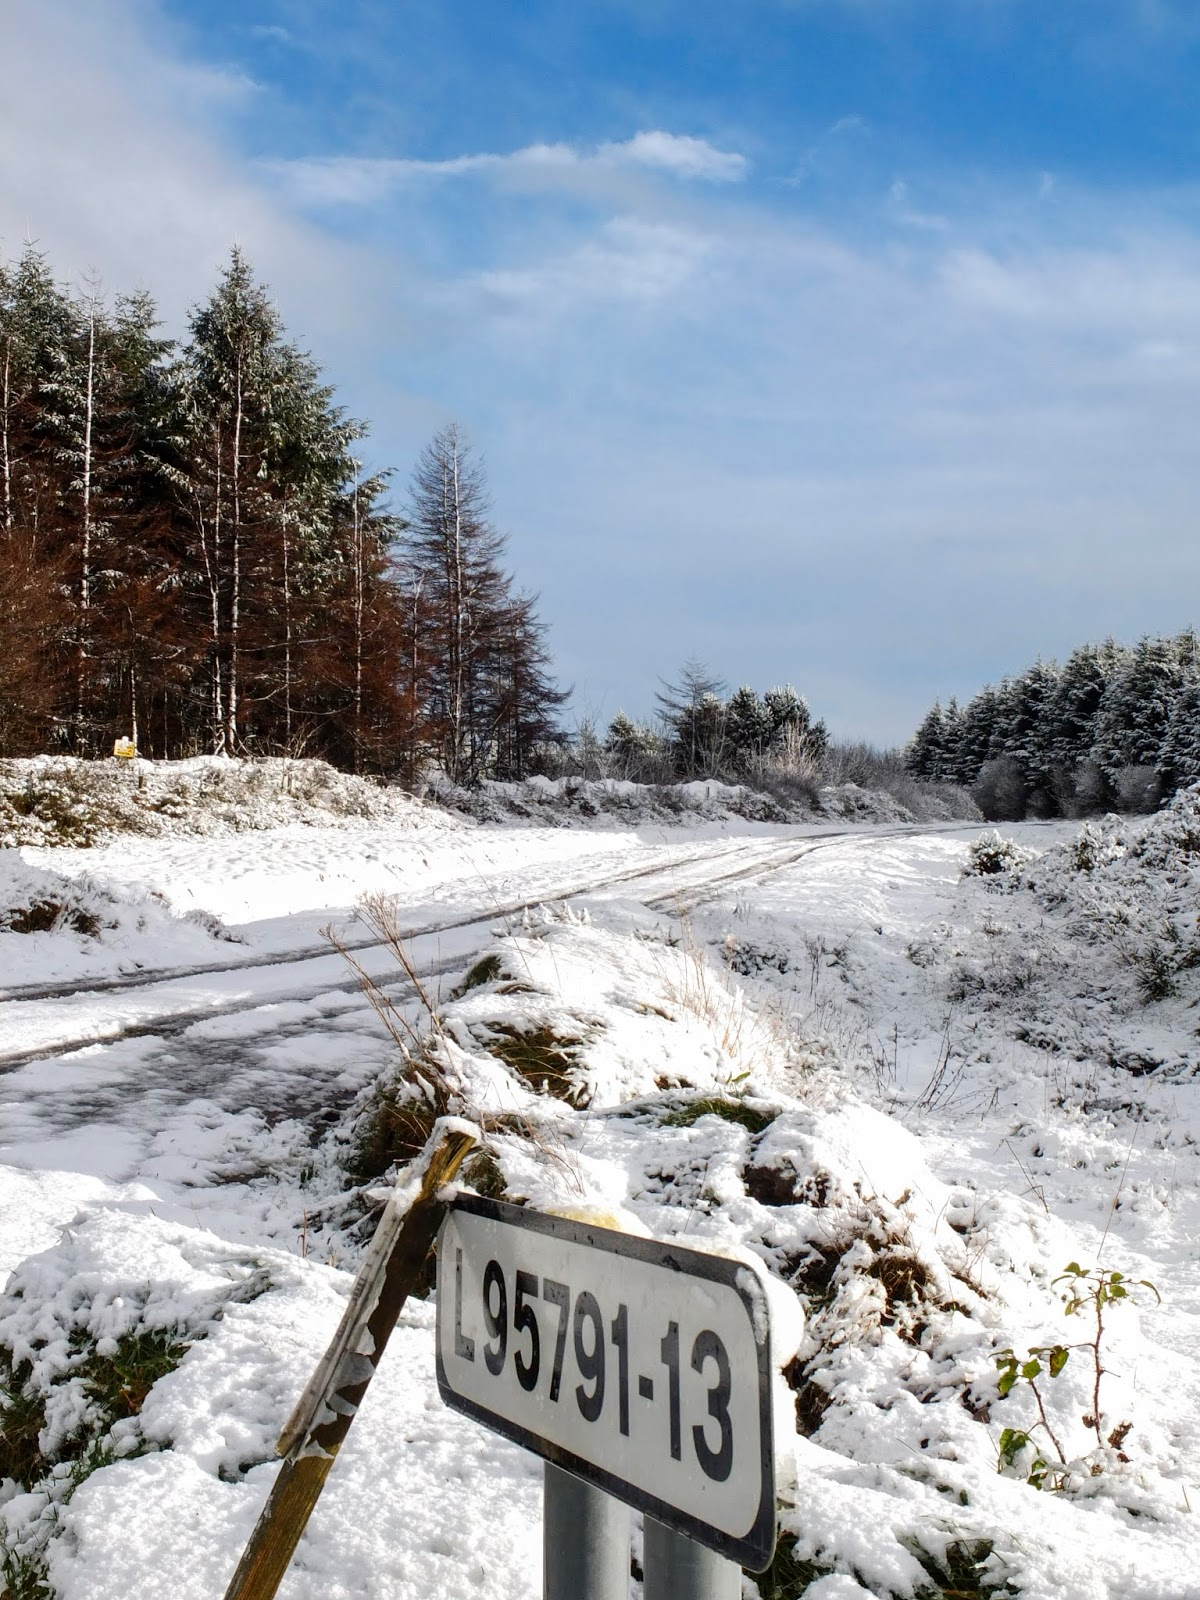 Snowy and sunny landscape of Duhallow.